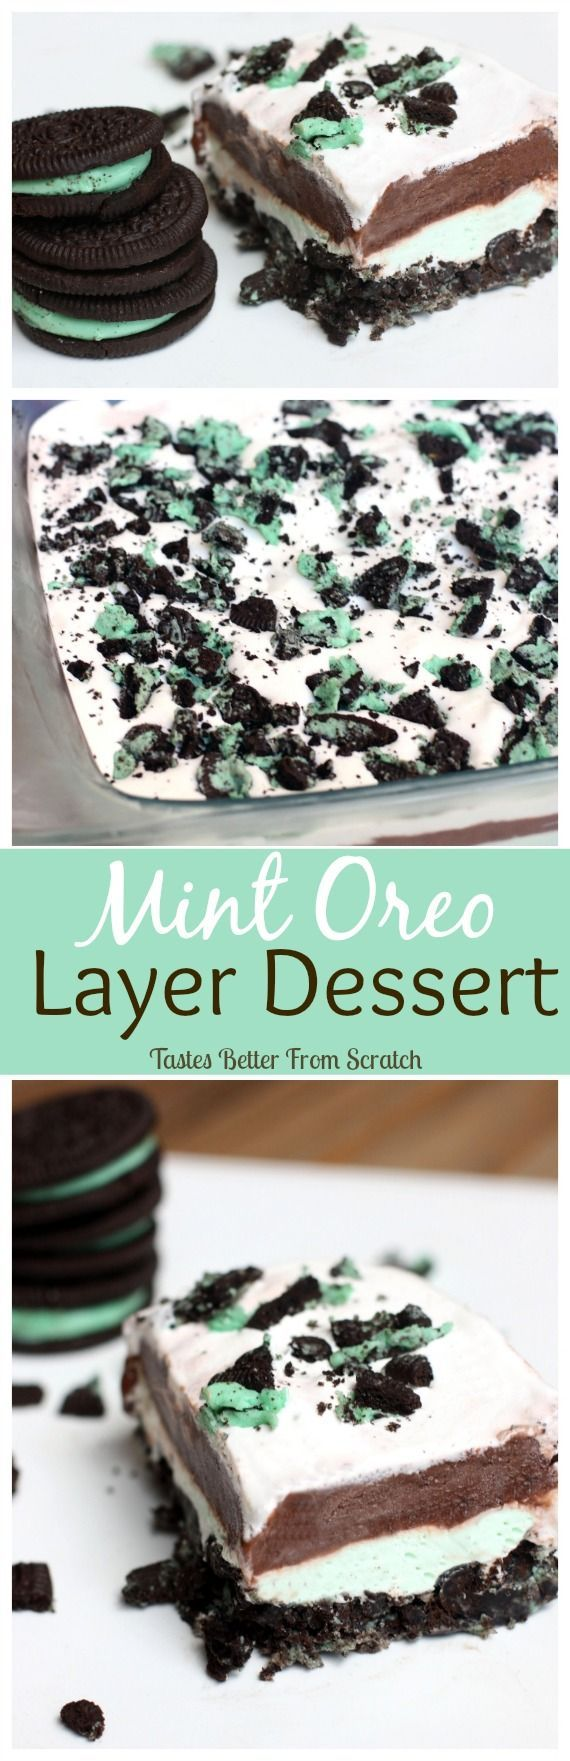 Mint Oreo Layer Dessert on MyRecipeMagic.com